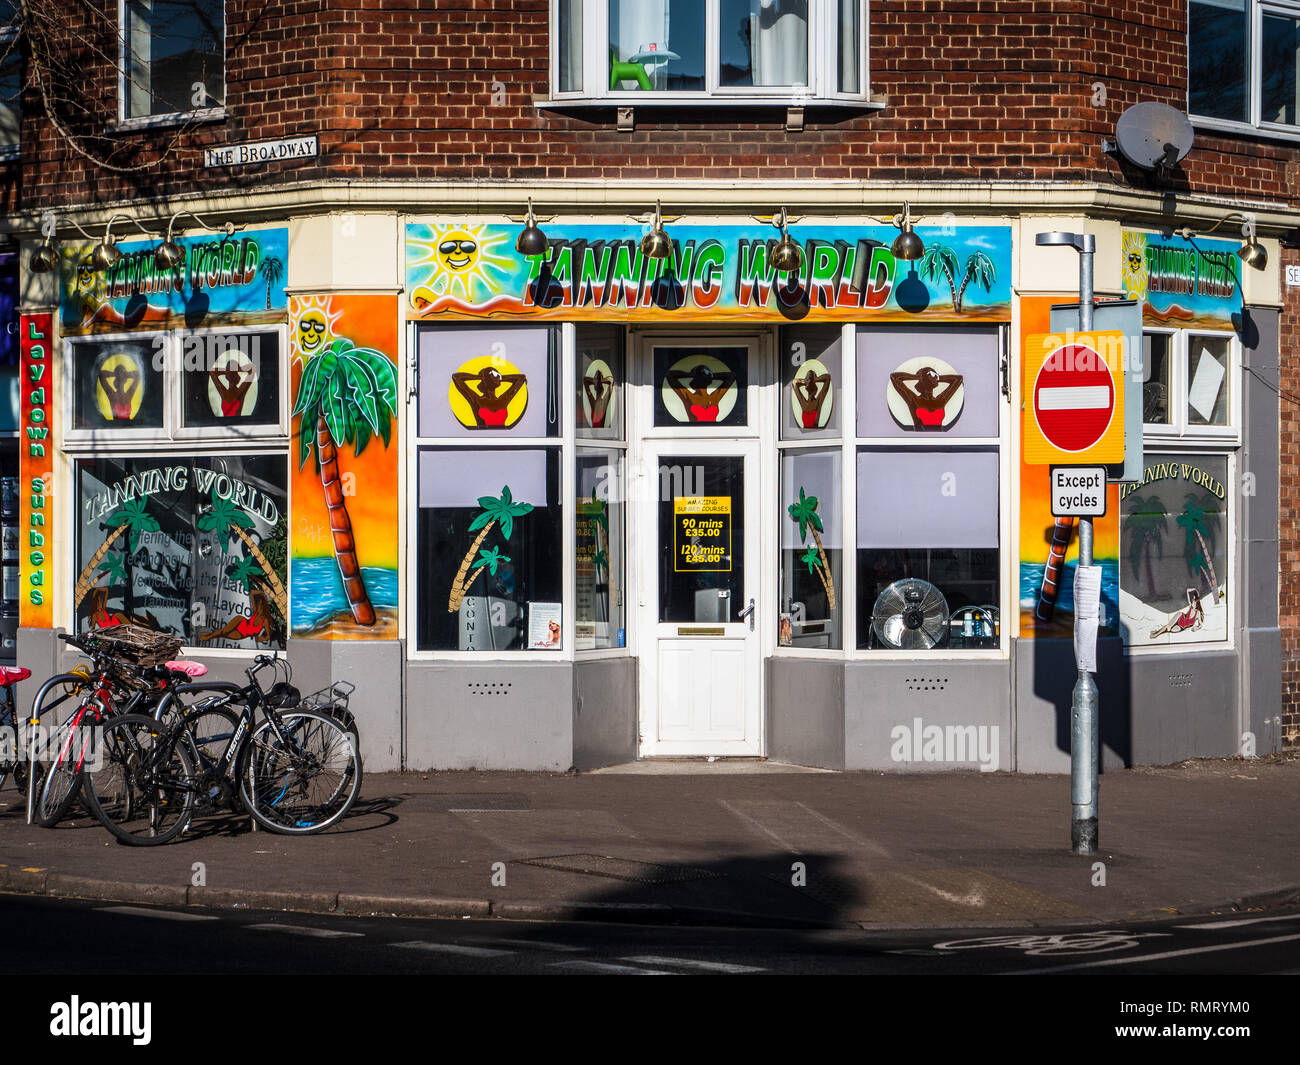 Tanning Shop - the Tanning World Tanning Salon in Mill Road, Cambridge UK - Stock Image